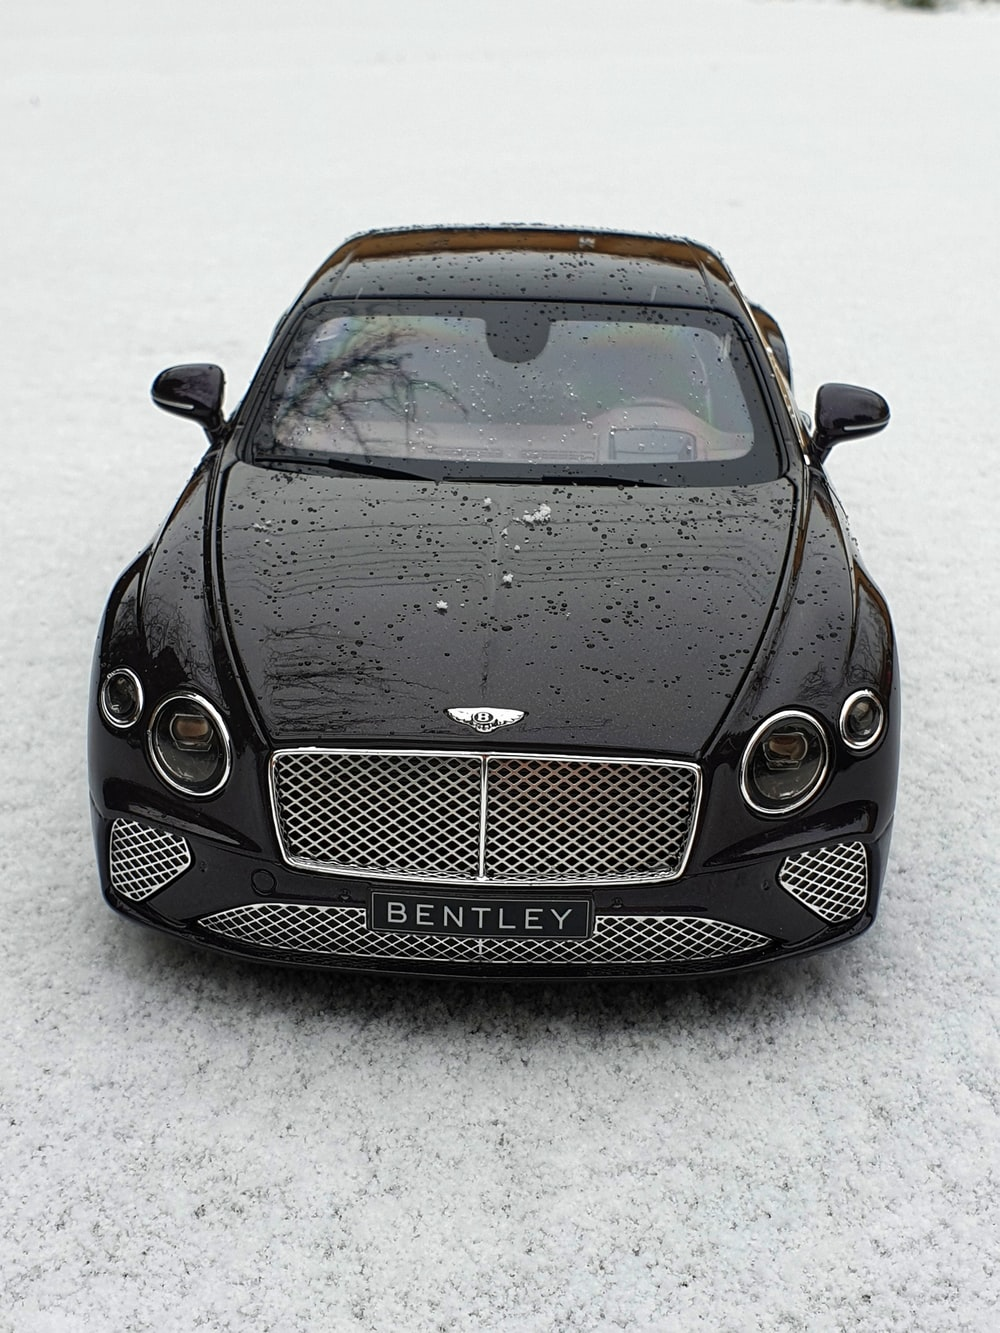 black mercedes benz c class on snow covered ground